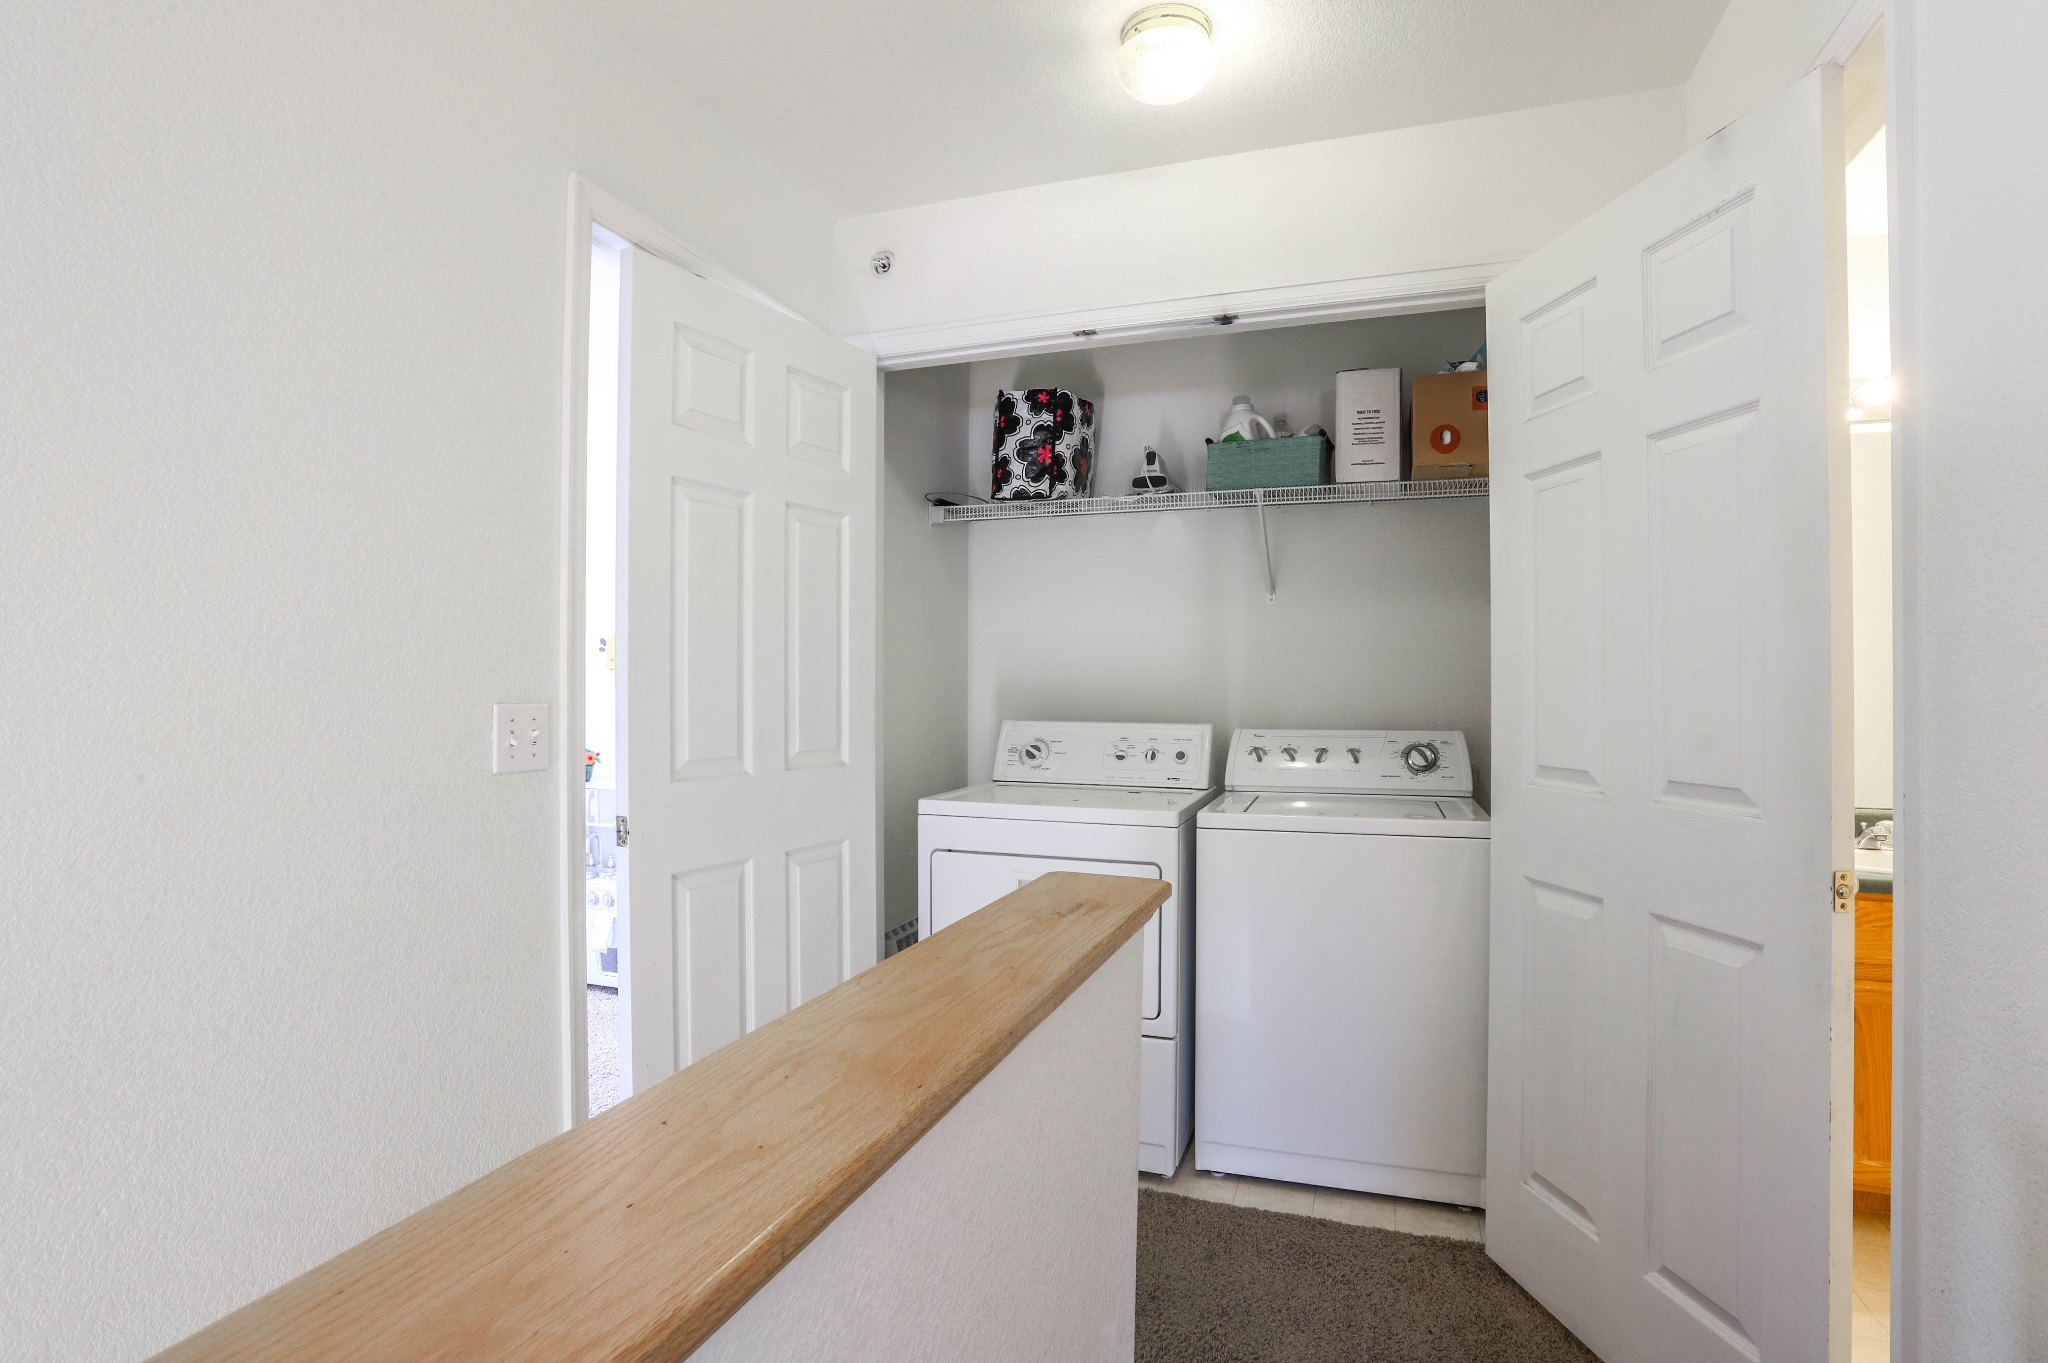 REAL ESTATE LISTING: 1601 Great Western Dr Longmont Laundry Closet